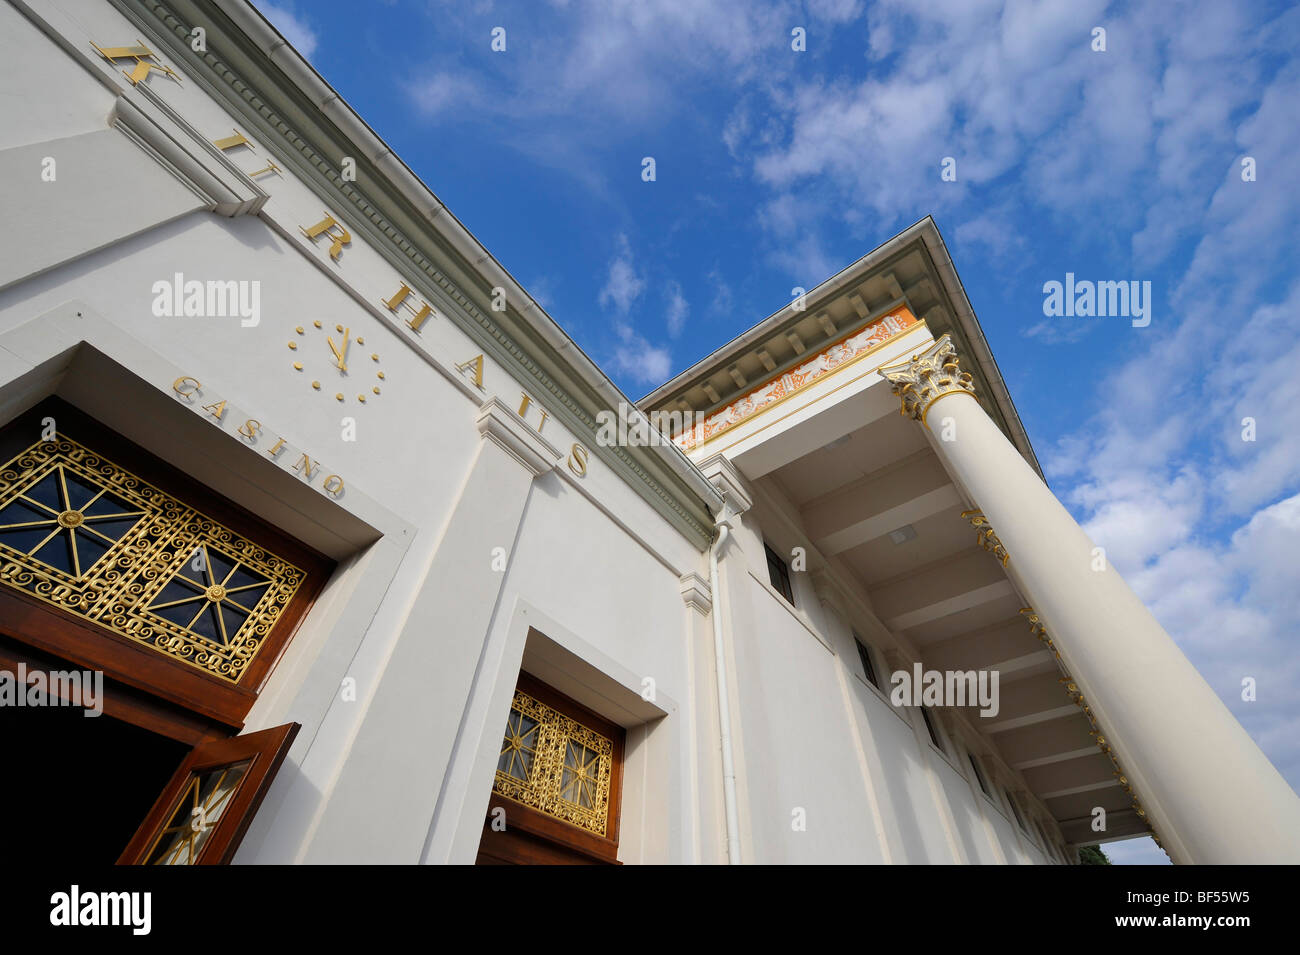 Entrance of the spa hotel with casino Baden-Baden, Baden-Wuerttemberg, Germany, Europe - Stock Image